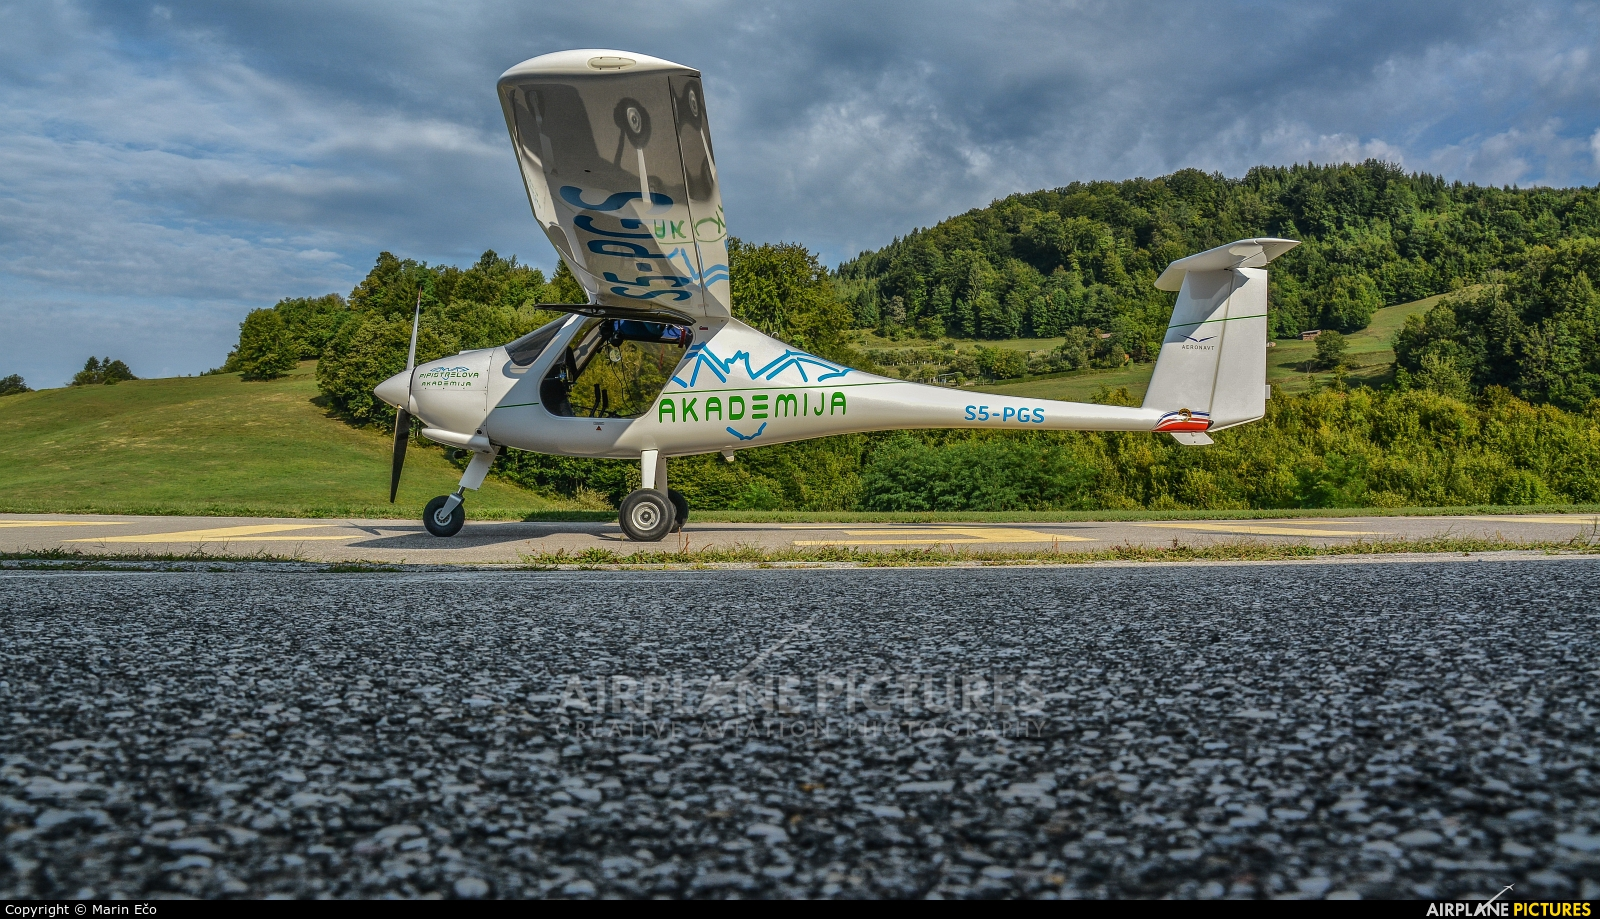 Helicop Litija S5-PGS aircraft at Off Airport - Slovenia